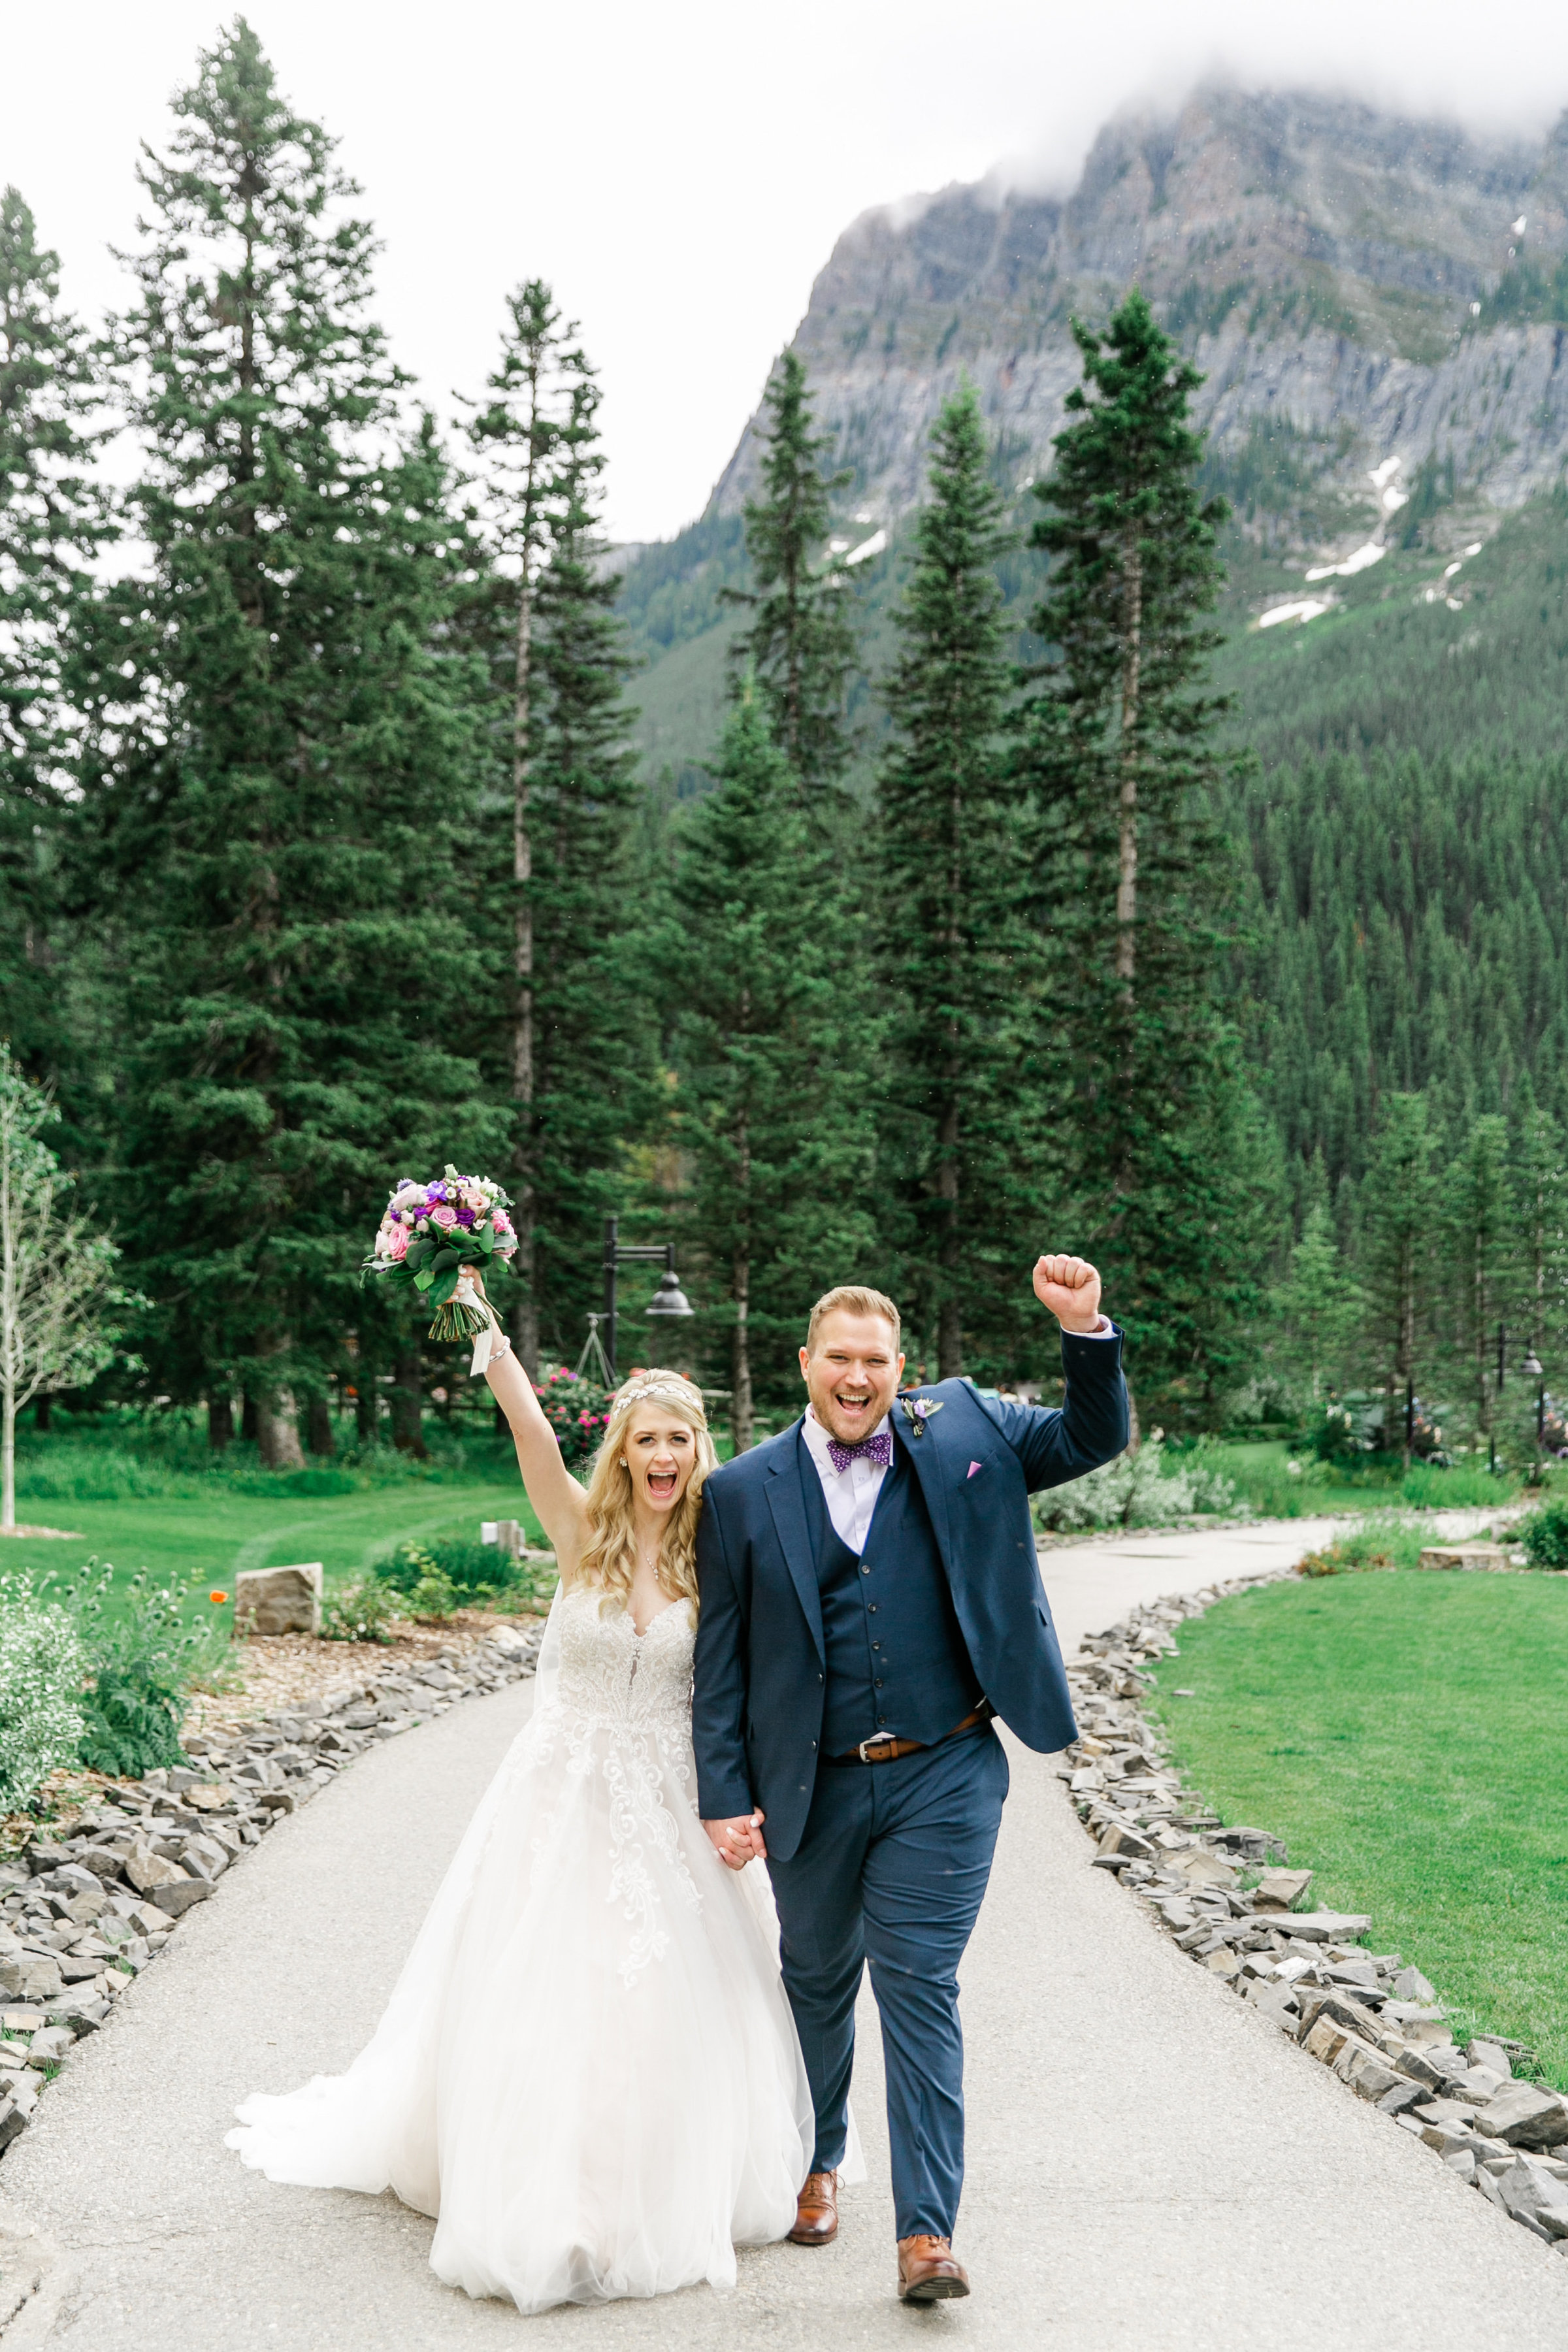 Karlie Colleen Photography - Fairmont Chateau Lake Louise Wedding - Banff Canada - Sara & Drew Forsberg-989